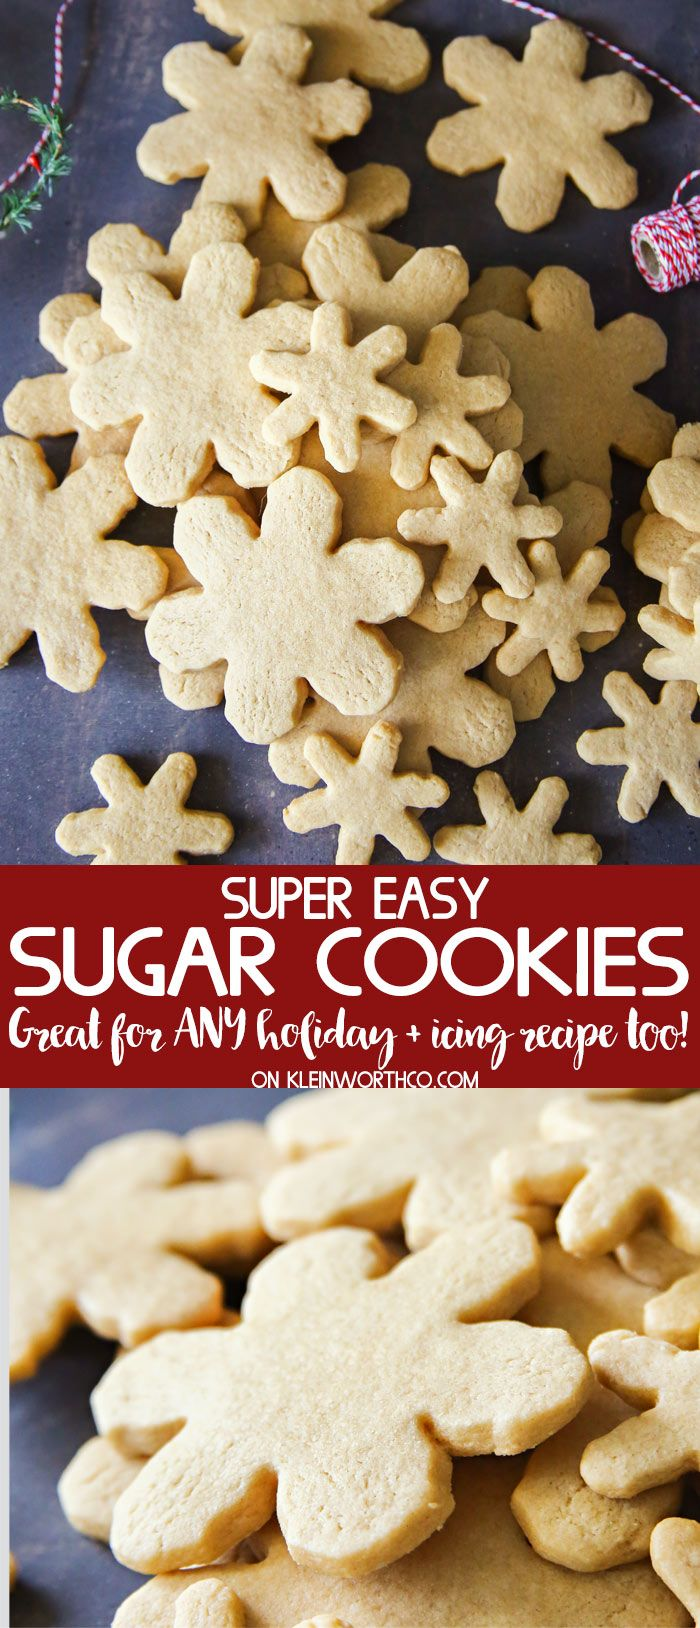 Easy Sugar Cookie Recipe for soft & chewy sugar cookies that come out perfect every time. Great for any holiday & super delicious gifts. You'll love them. via @KleinworthCo #sugarcookies #holiday #cookies #christmas #snowflake #dessert #treat #easyrecipes